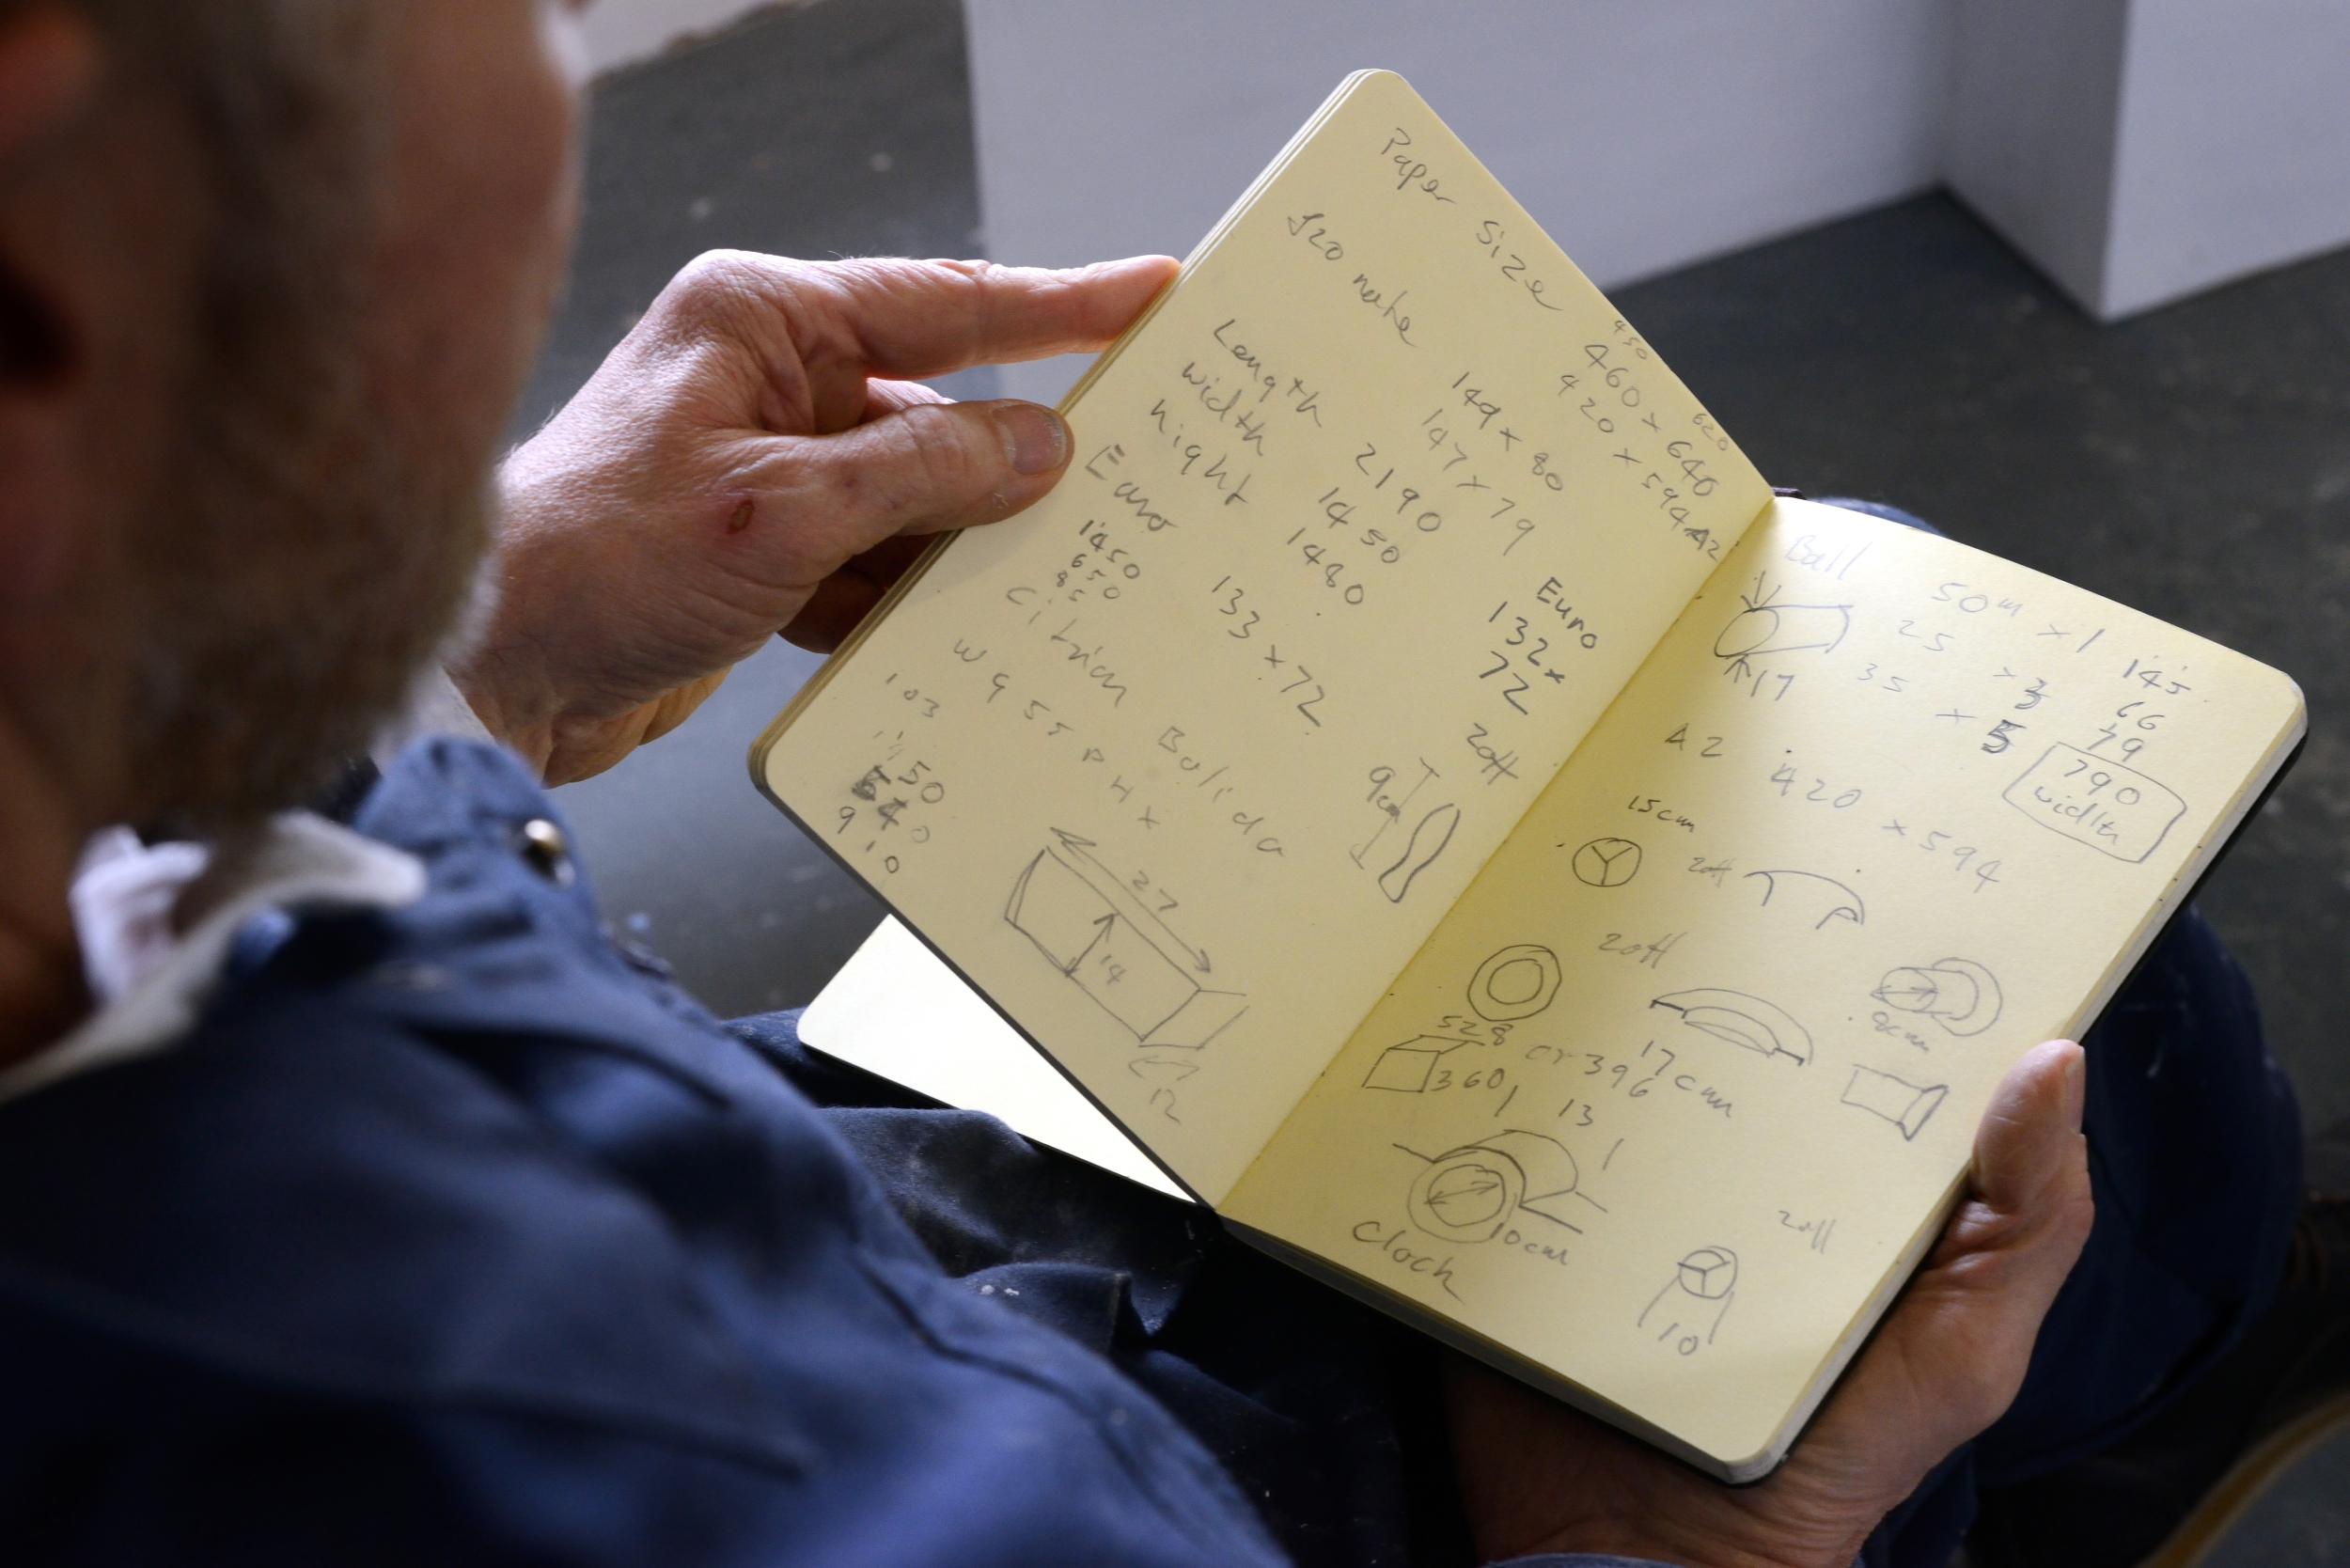 The artist's notebook, photo by AK Purkiss